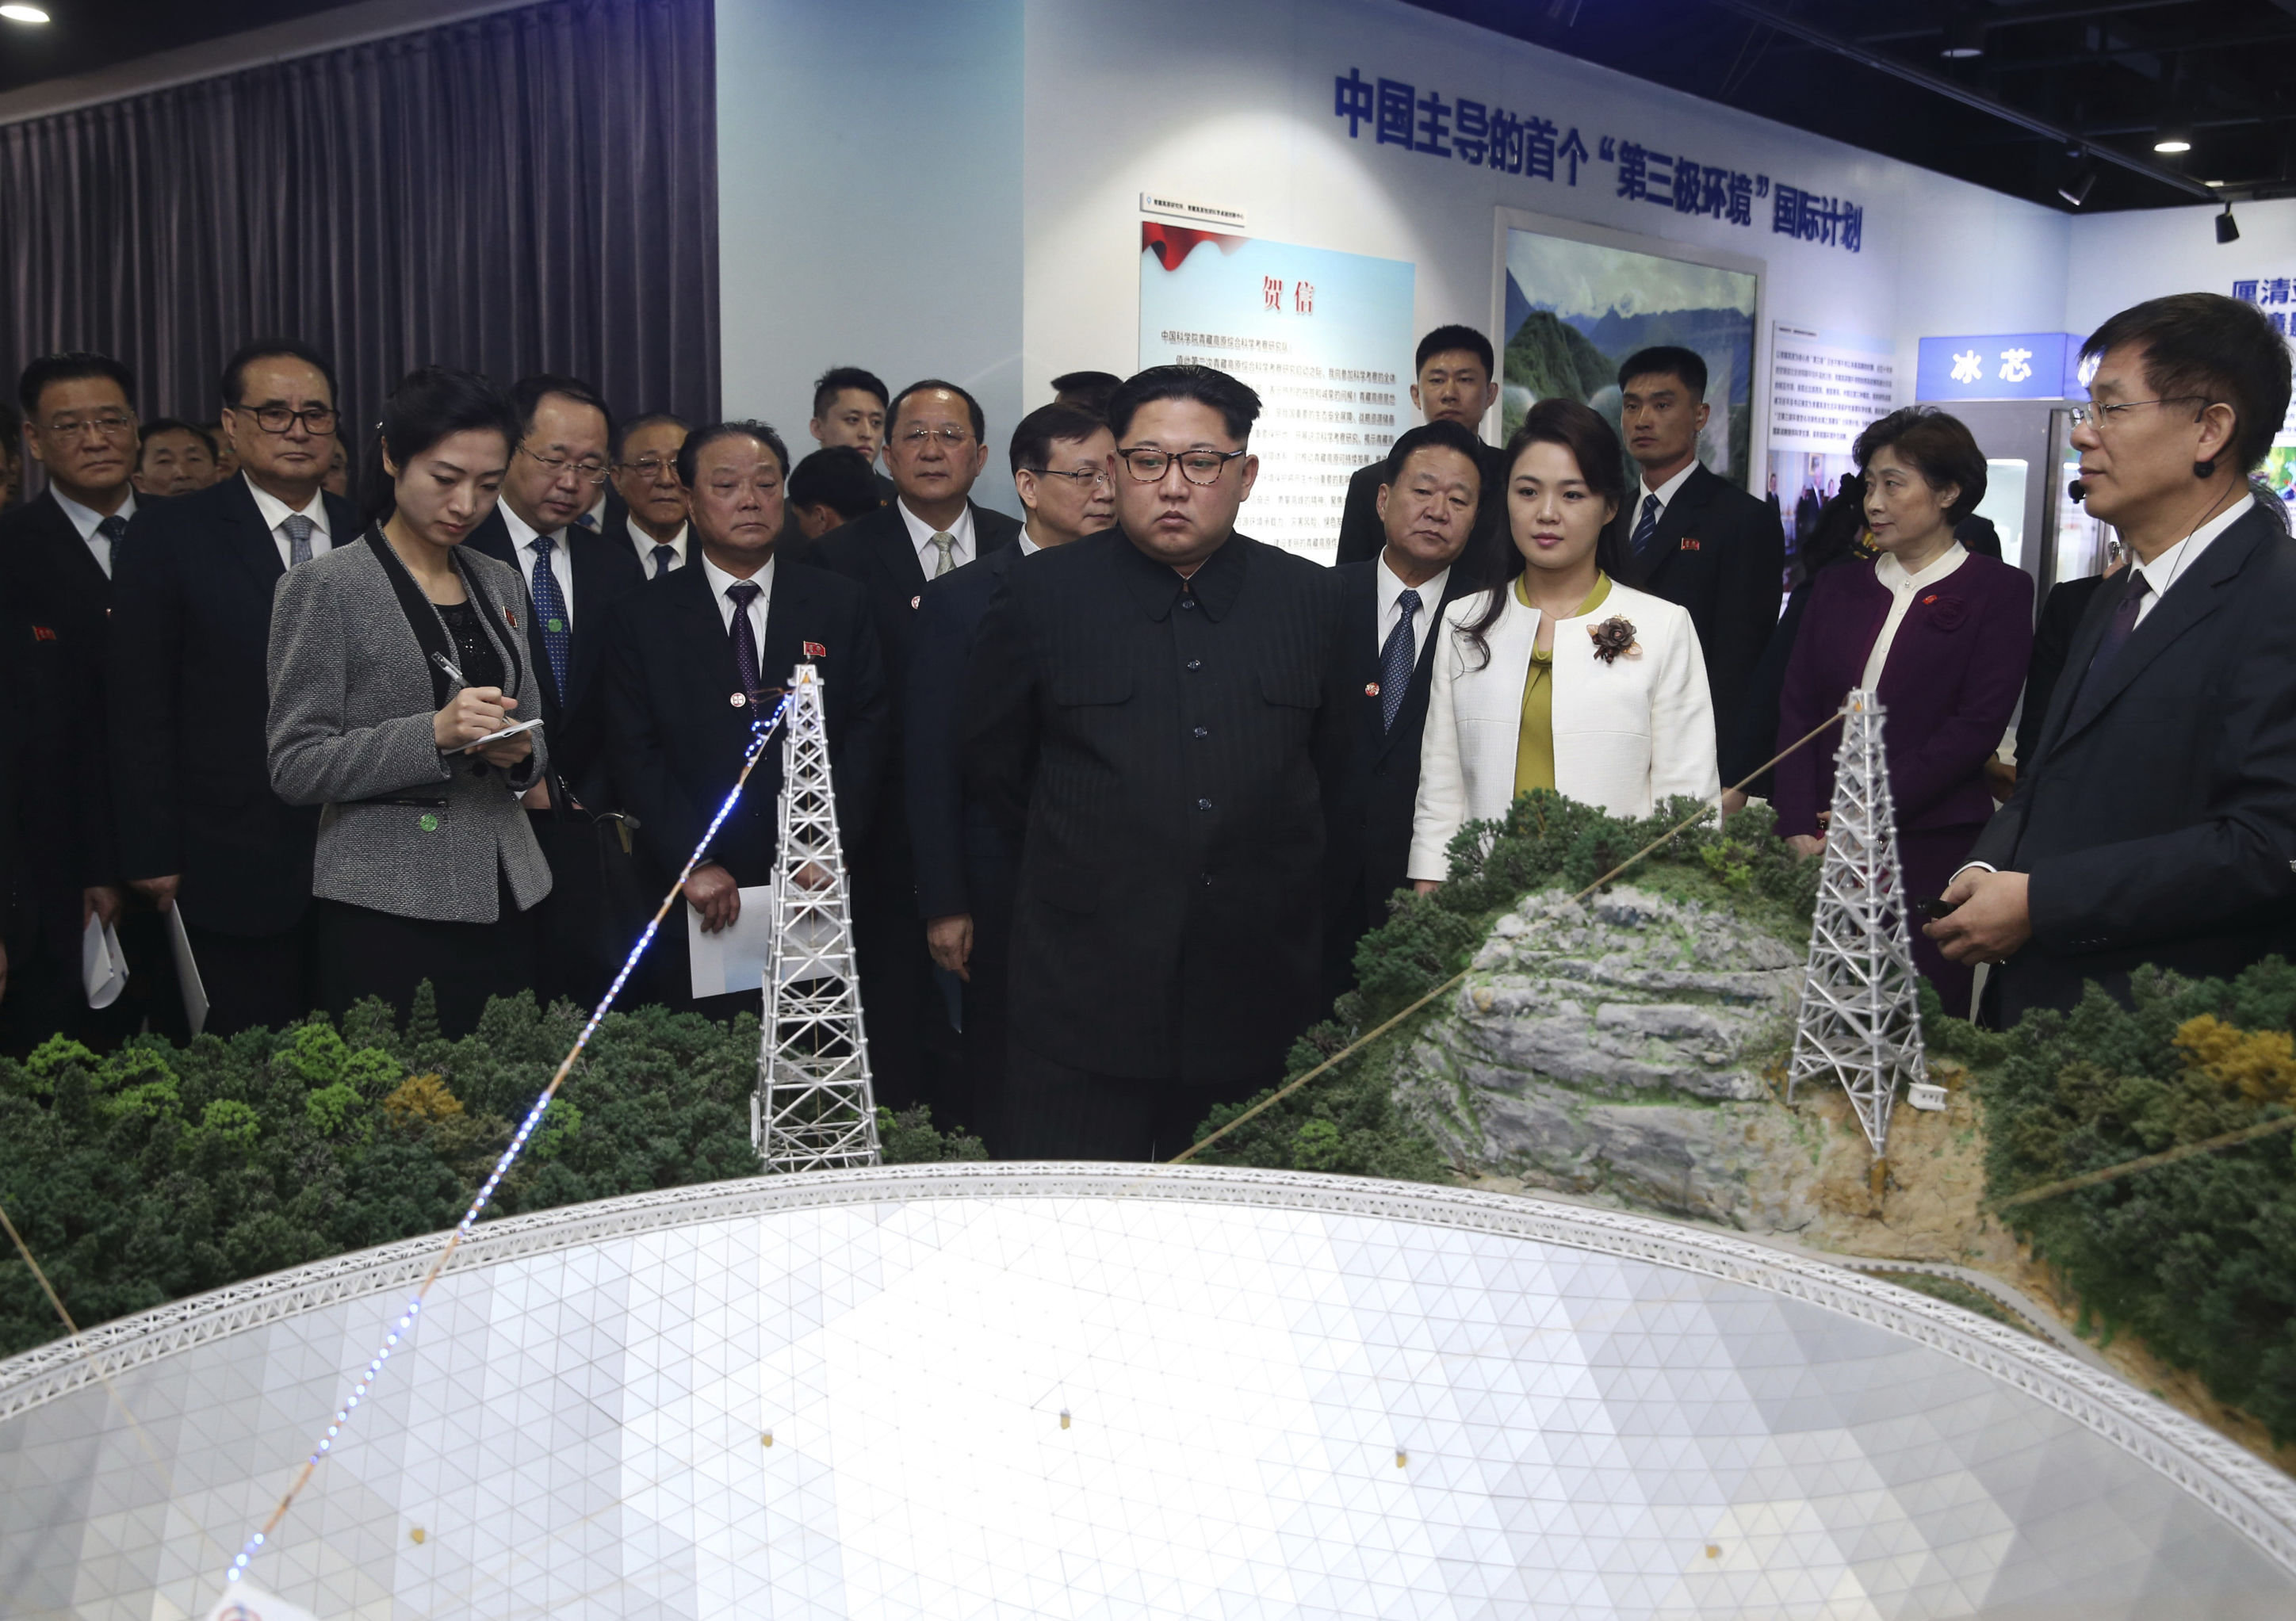 In this photo released Wednesday, March 28, 2018 by China's Xinhua News Agency, North Korean leader Kim Jong Un, center, and his wife Ri Sol Ju, visit an exhibition highlighting achievements by the Chinese Academy of Sciences.